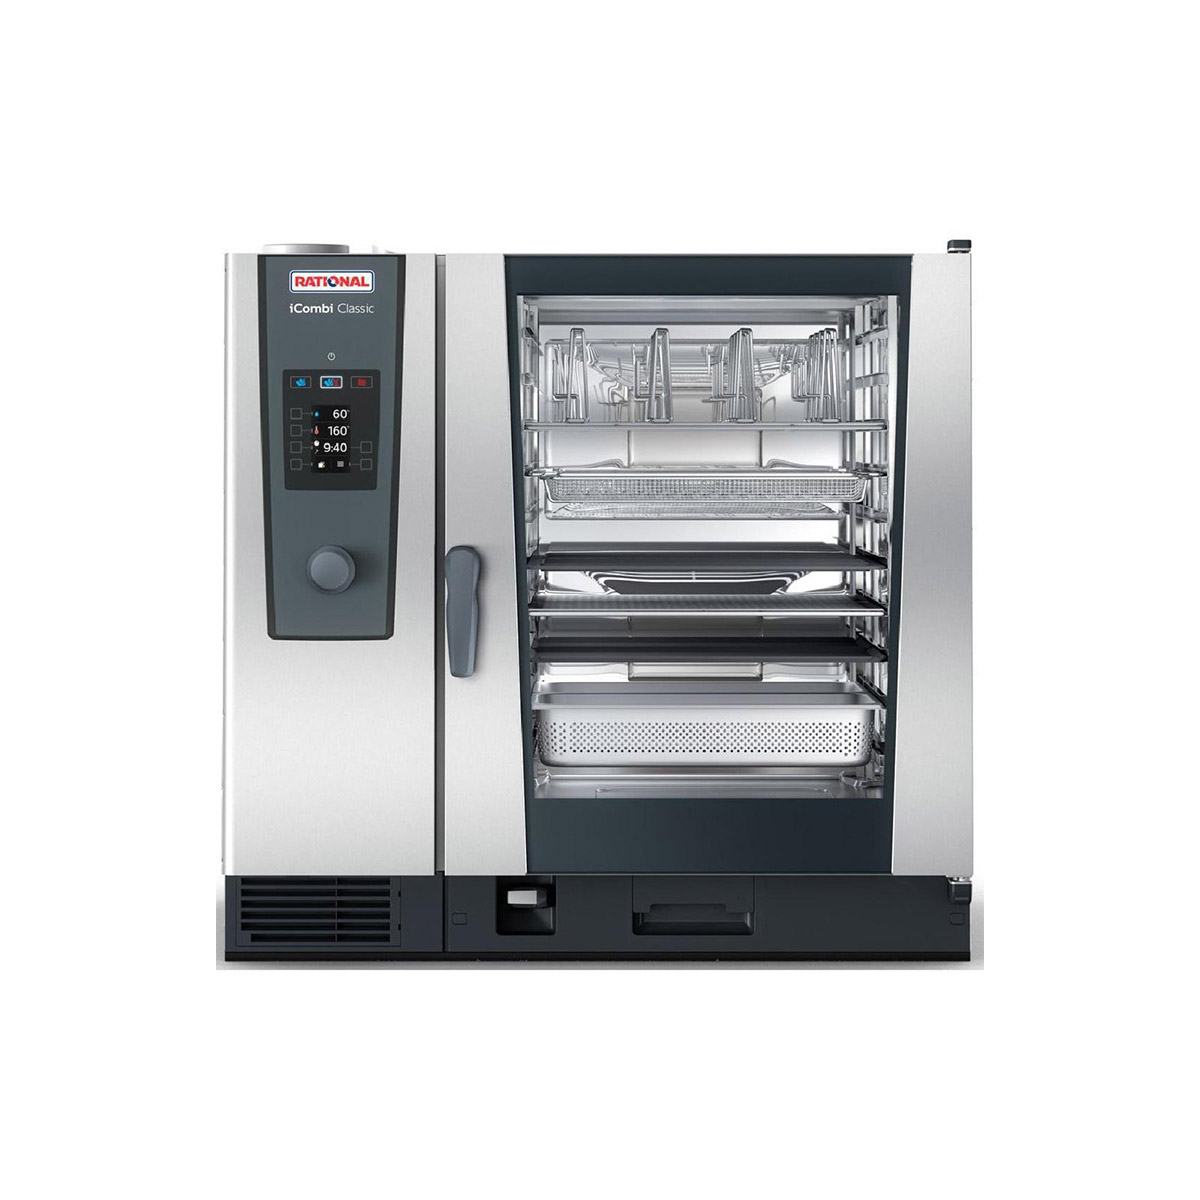 Rational iCombi Classic 10-2/1/G/P 10 Grid 2/1GN Propane Gas Combination Oven